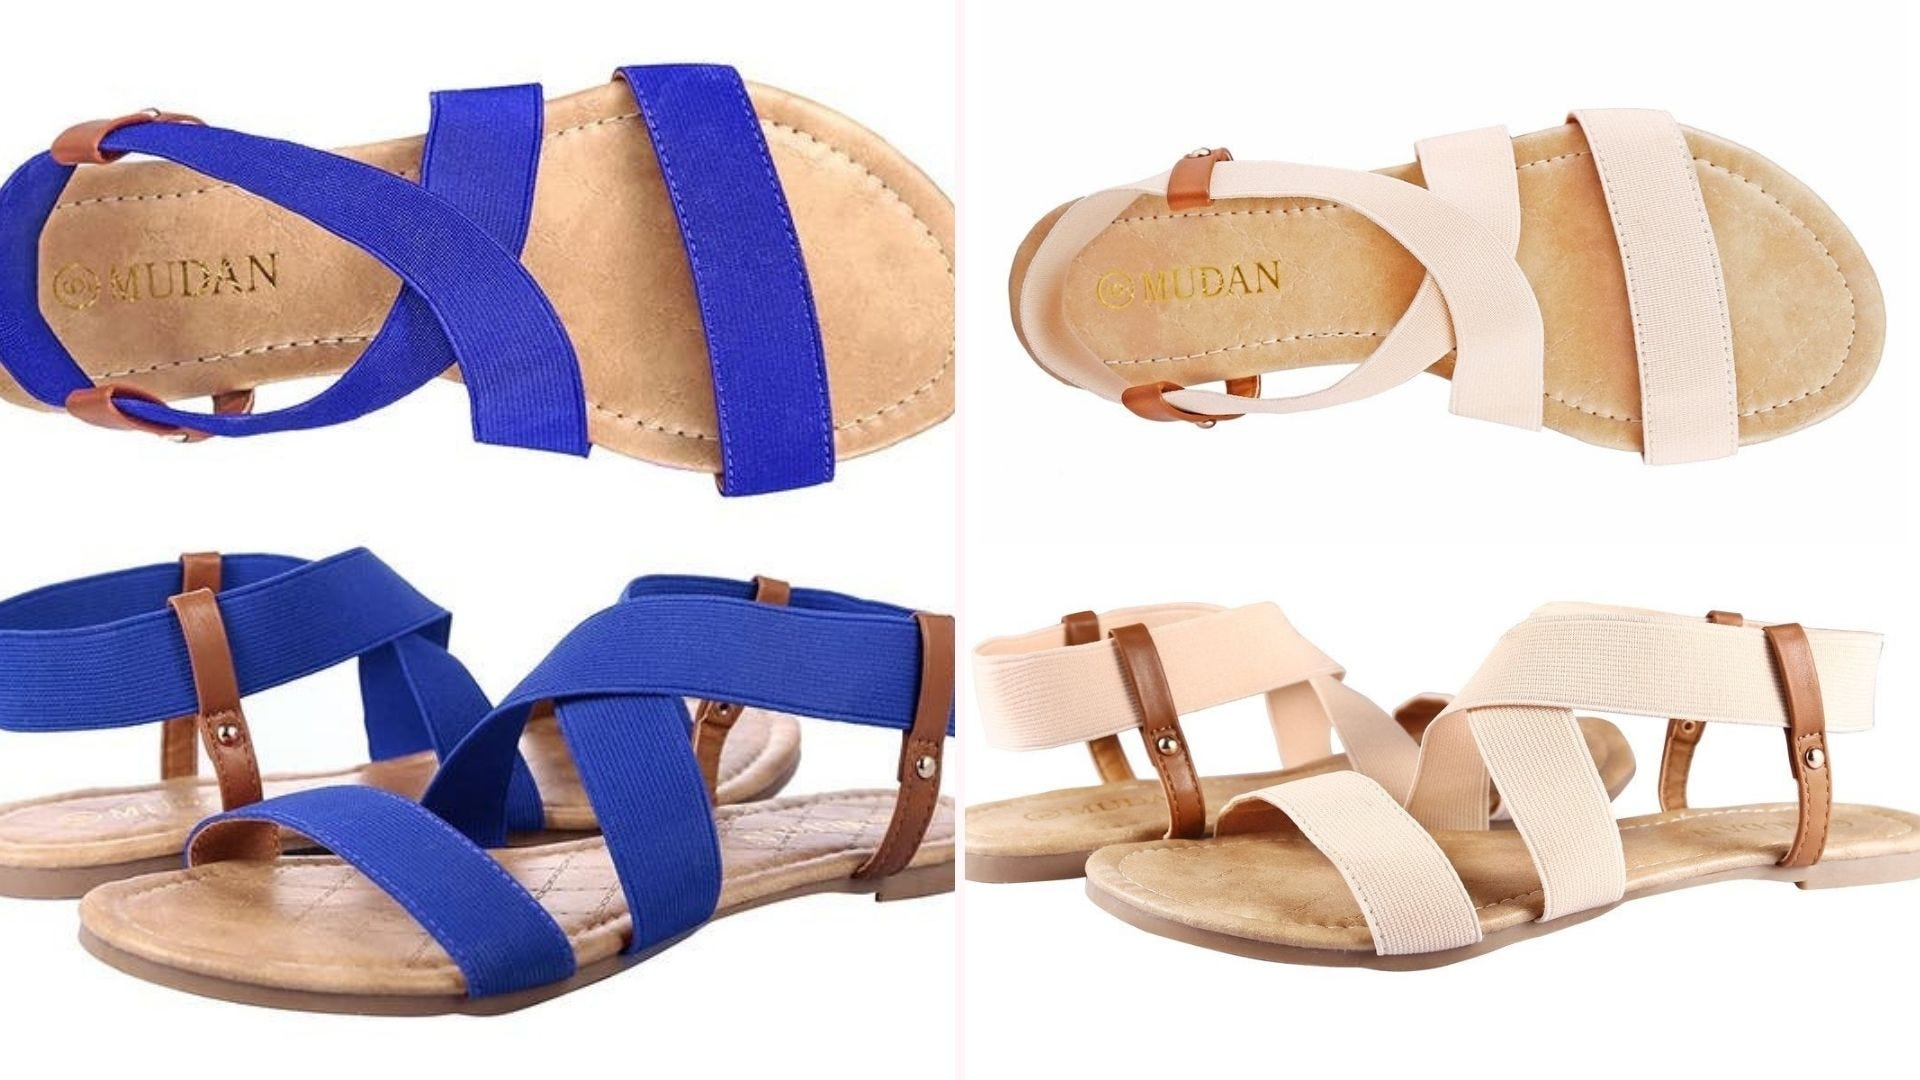 A blue pair of sandals; a pale pink-ish pair of sandals